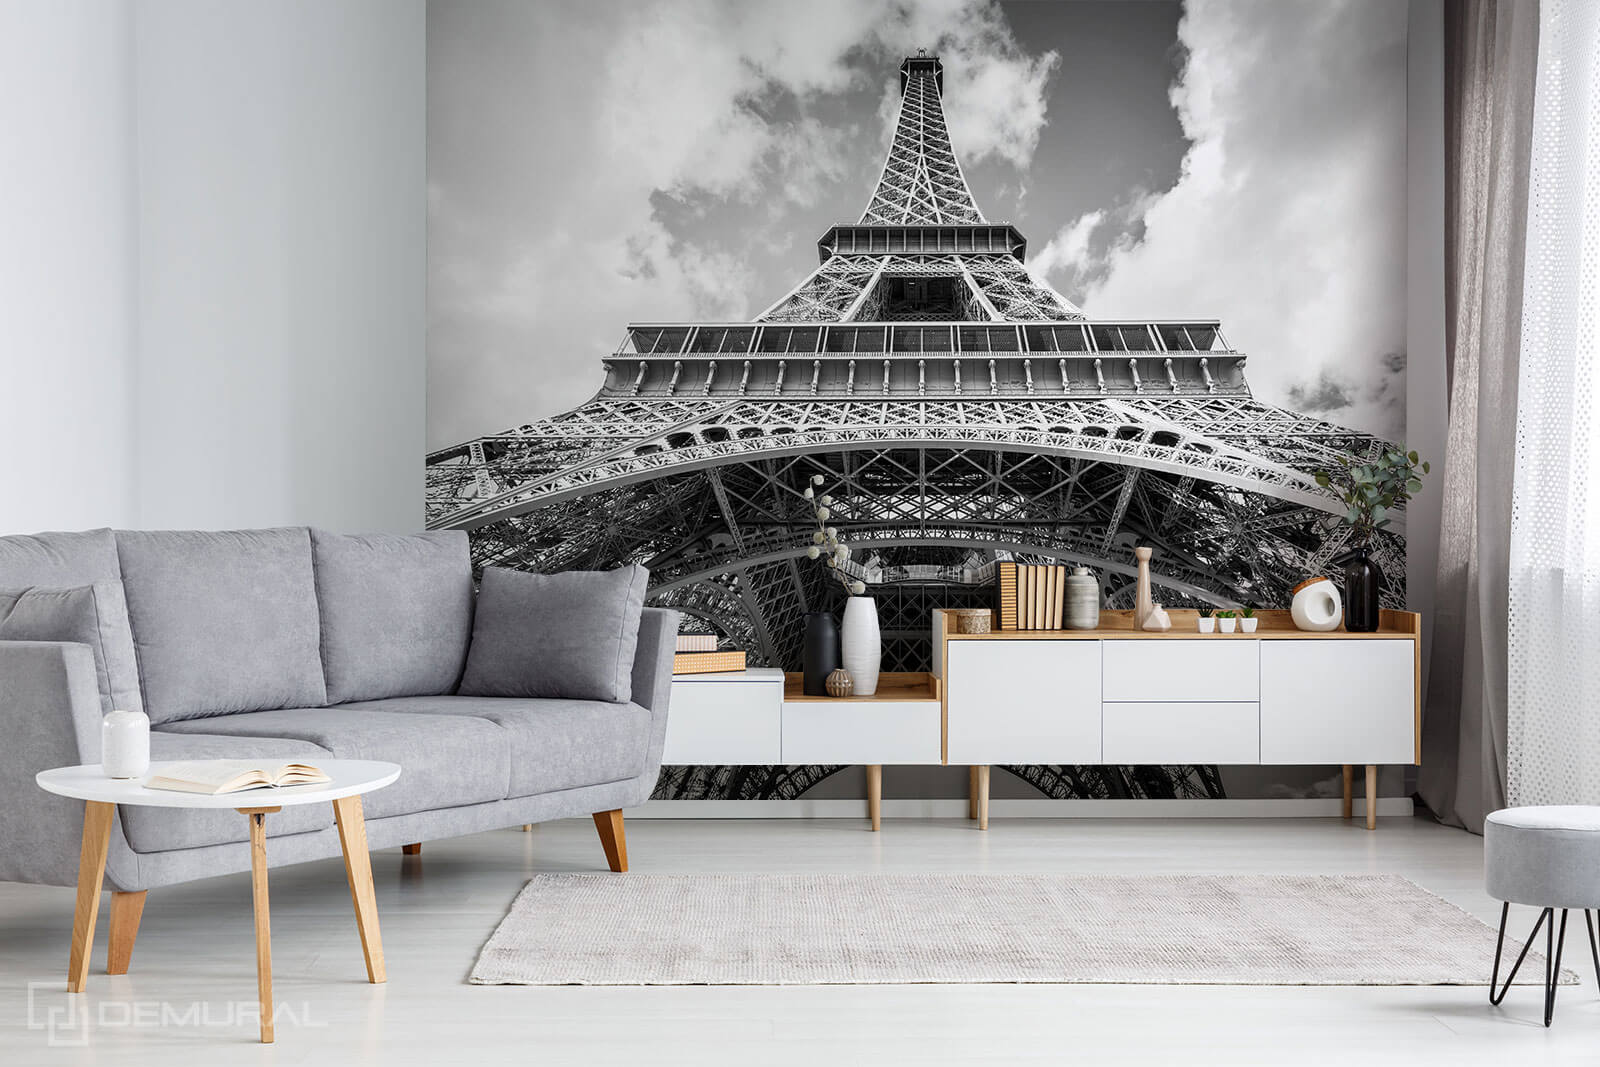 Photo wallpaper Black and White Eiffel Tower - photo wallpaper Eiffel tower - Demural